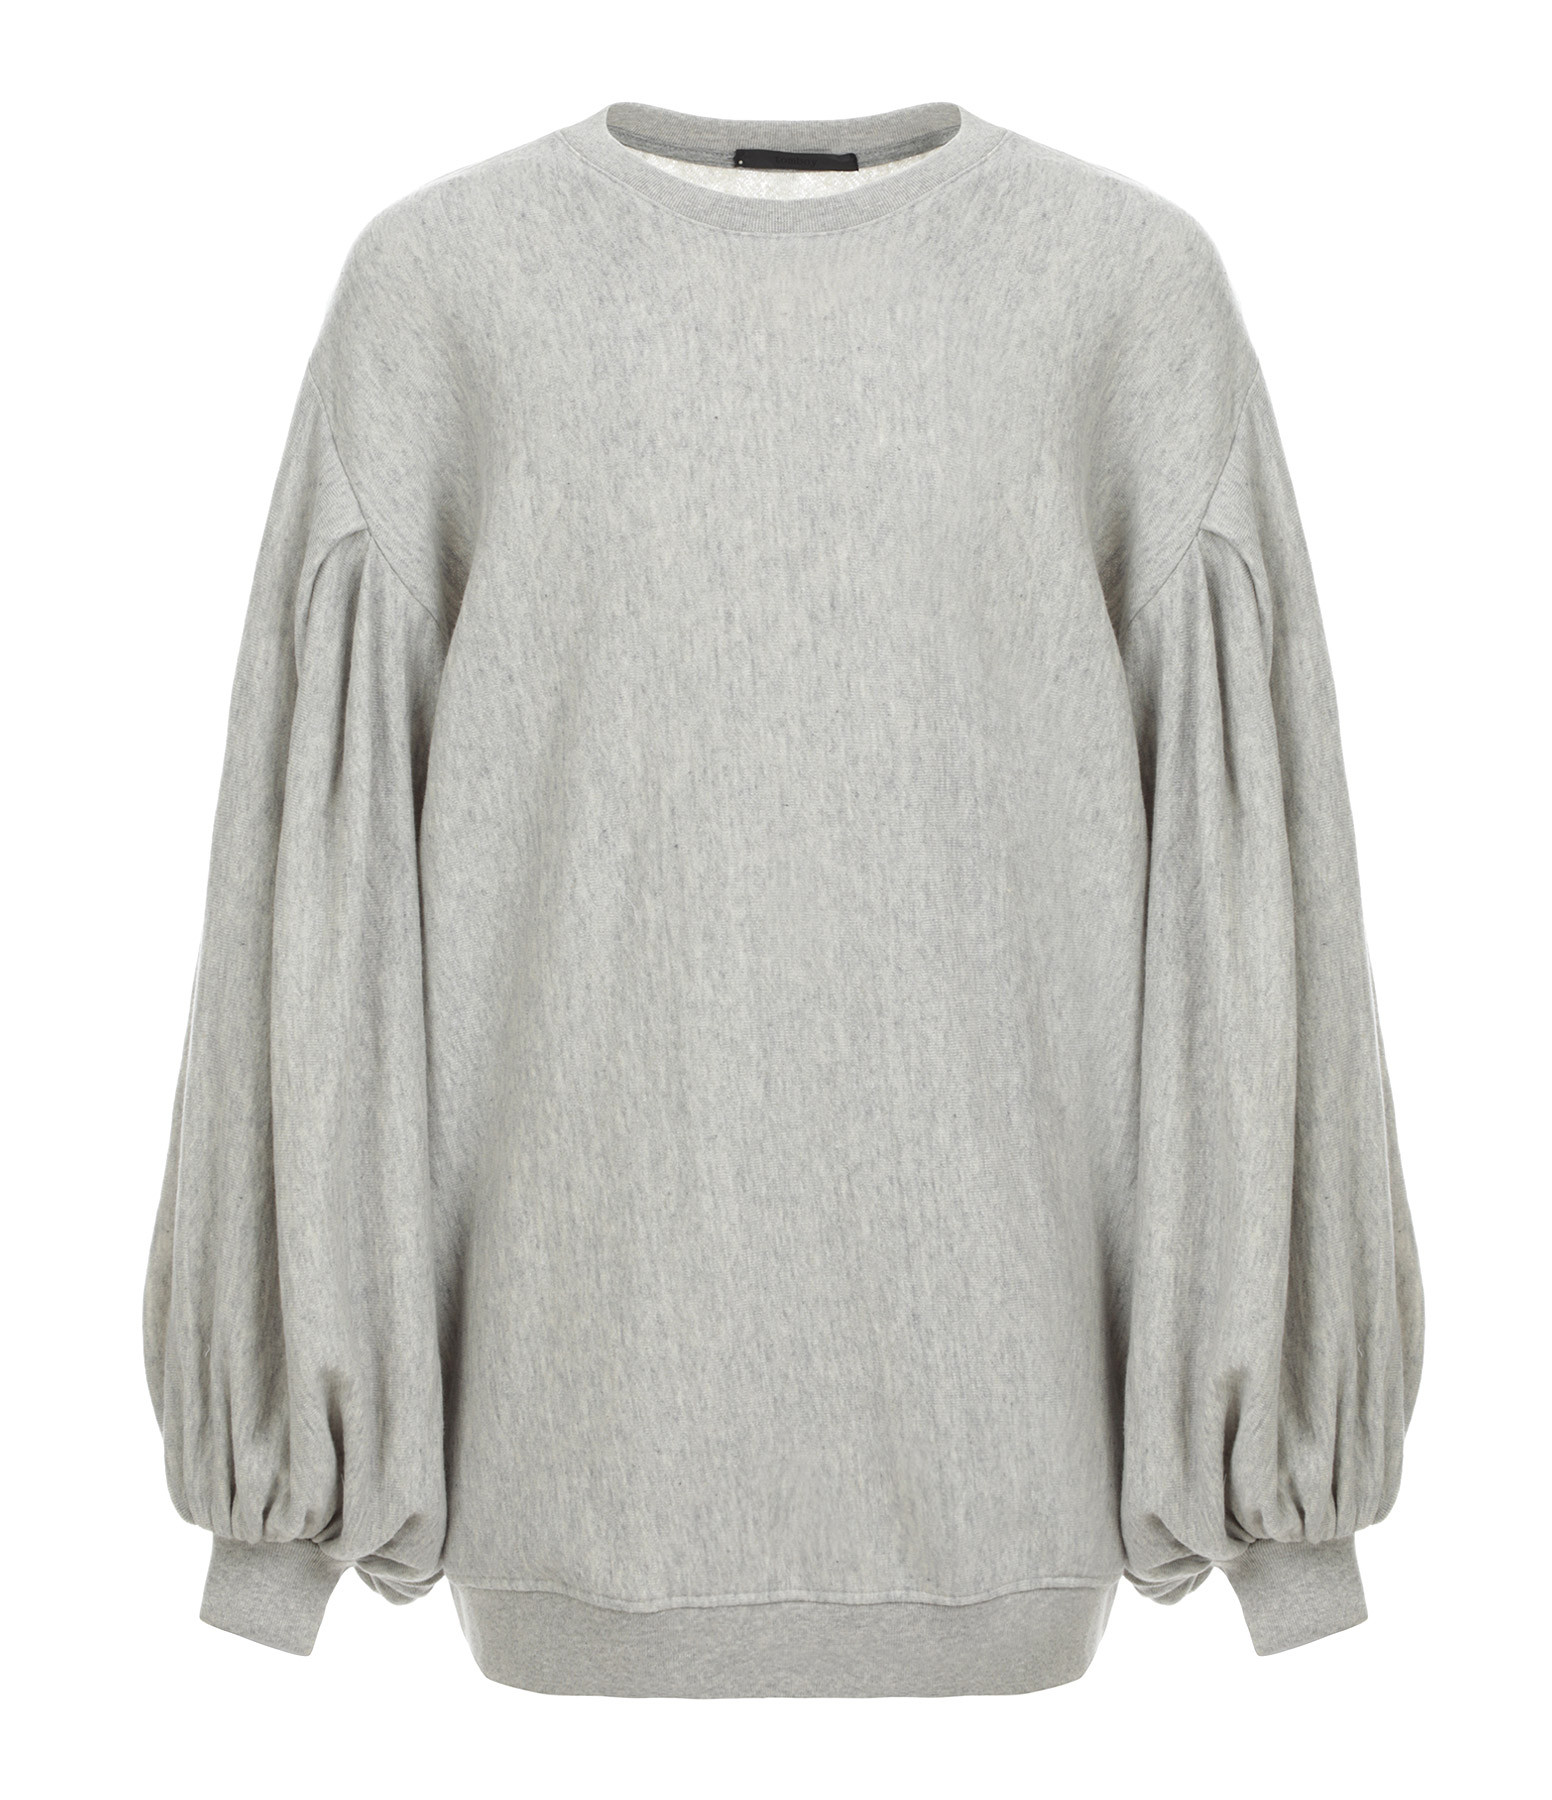 MADE IN TOMBOY - Robe Pull Kyla Gris